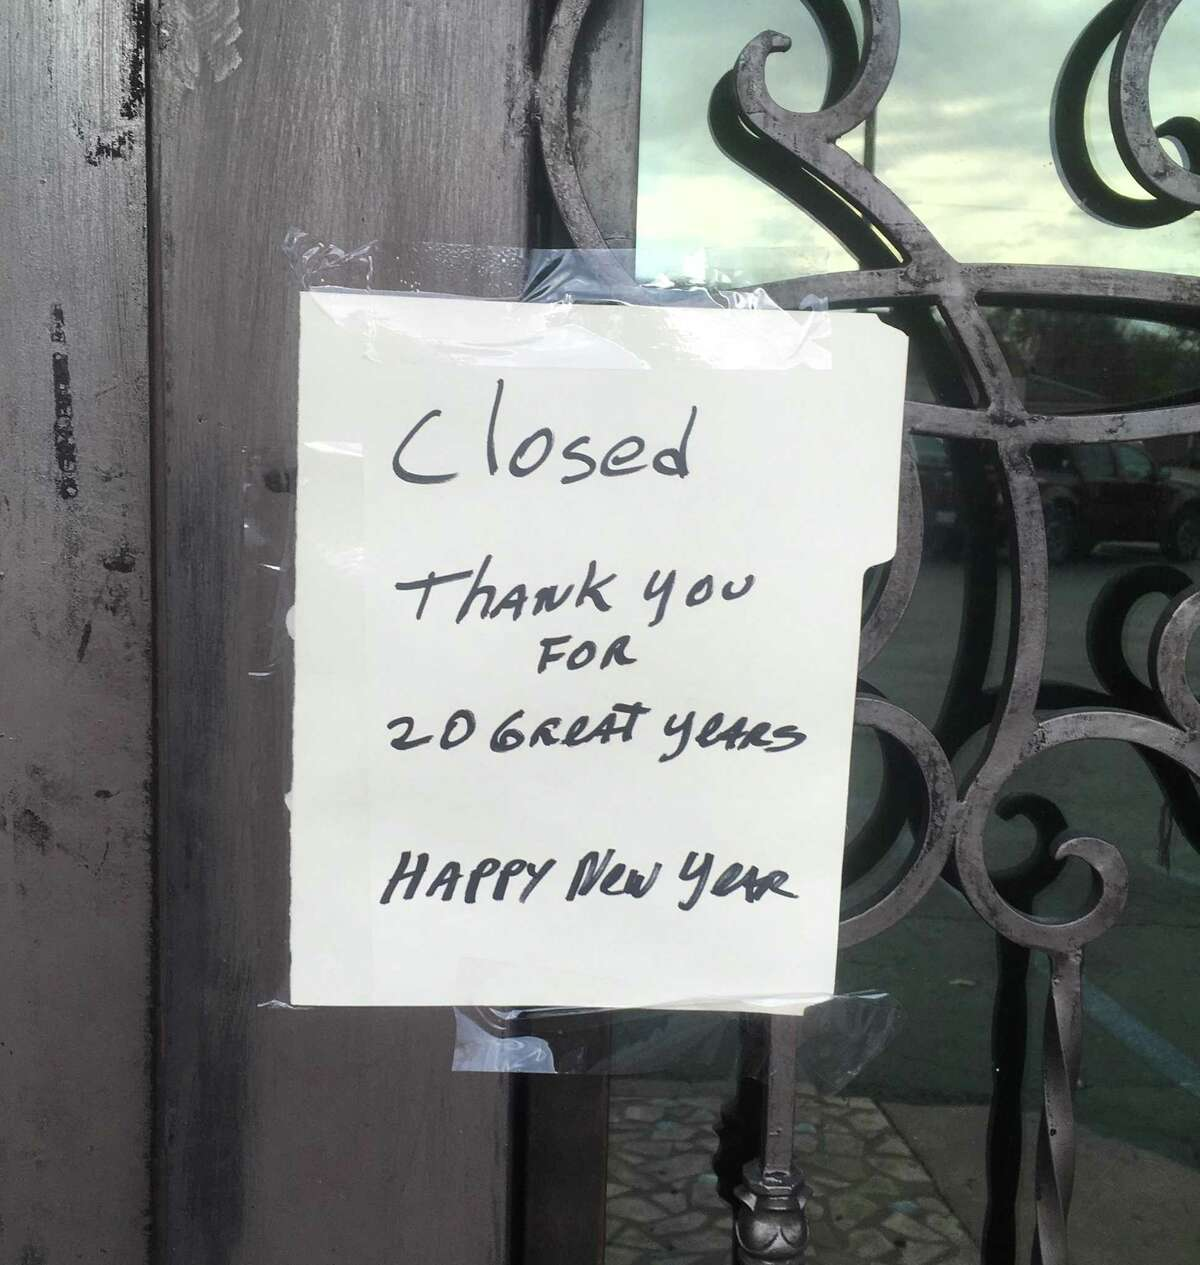 The Picante Grill at 3810 Broadway has permanently closed for business after almost 20 years of business.